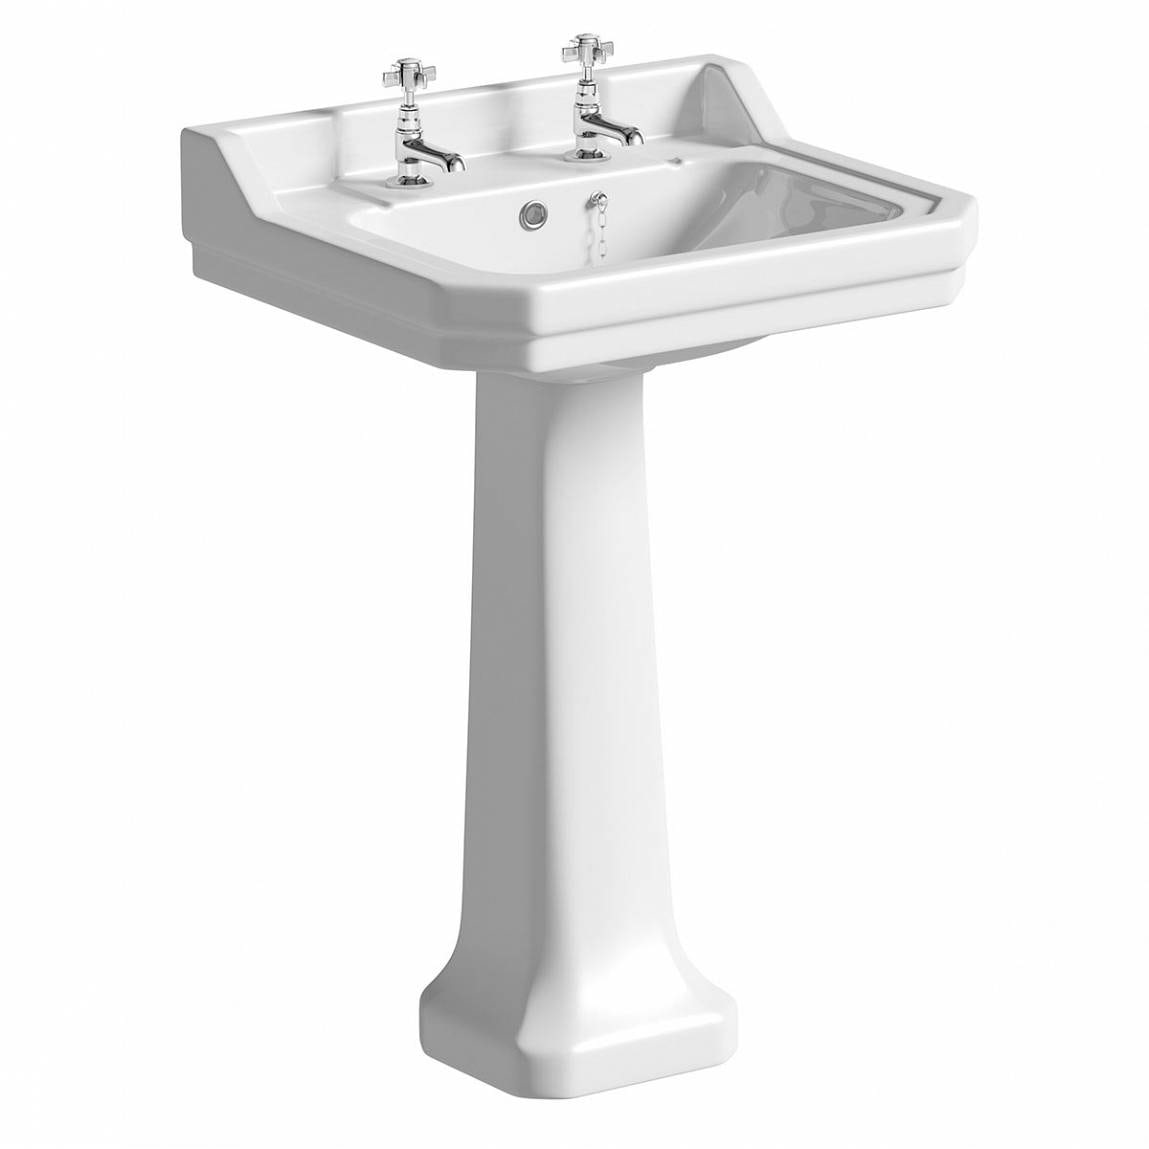 The Bath Co. Camberley 2 tap hole full pedestal basin